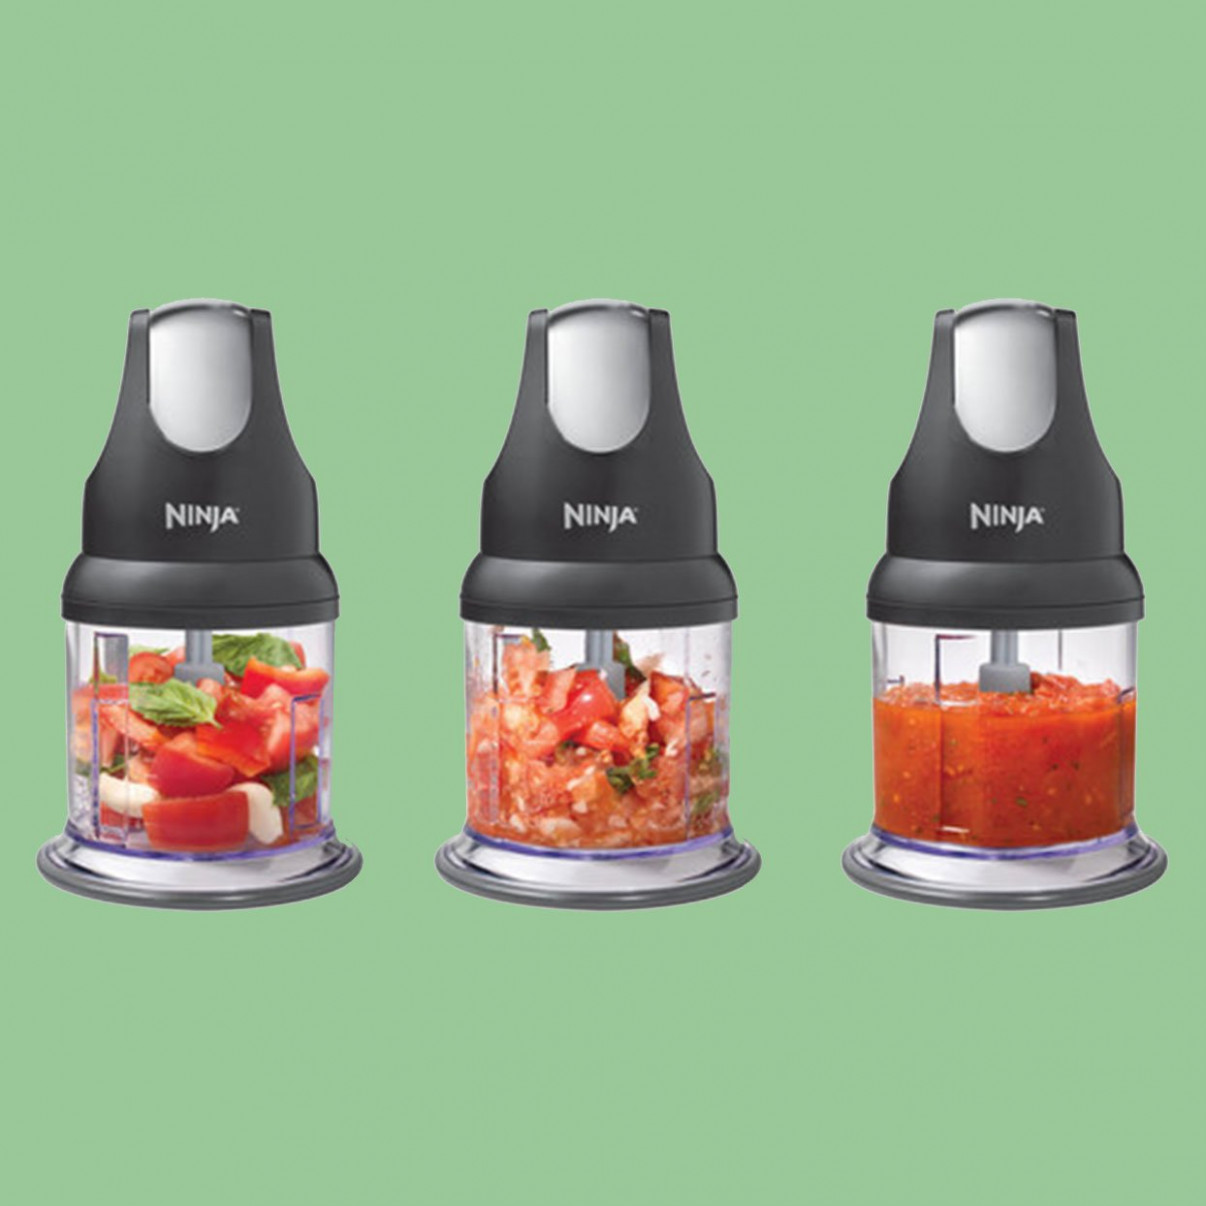 12 Best Mini Food Processors for 12, According to Reviews ..